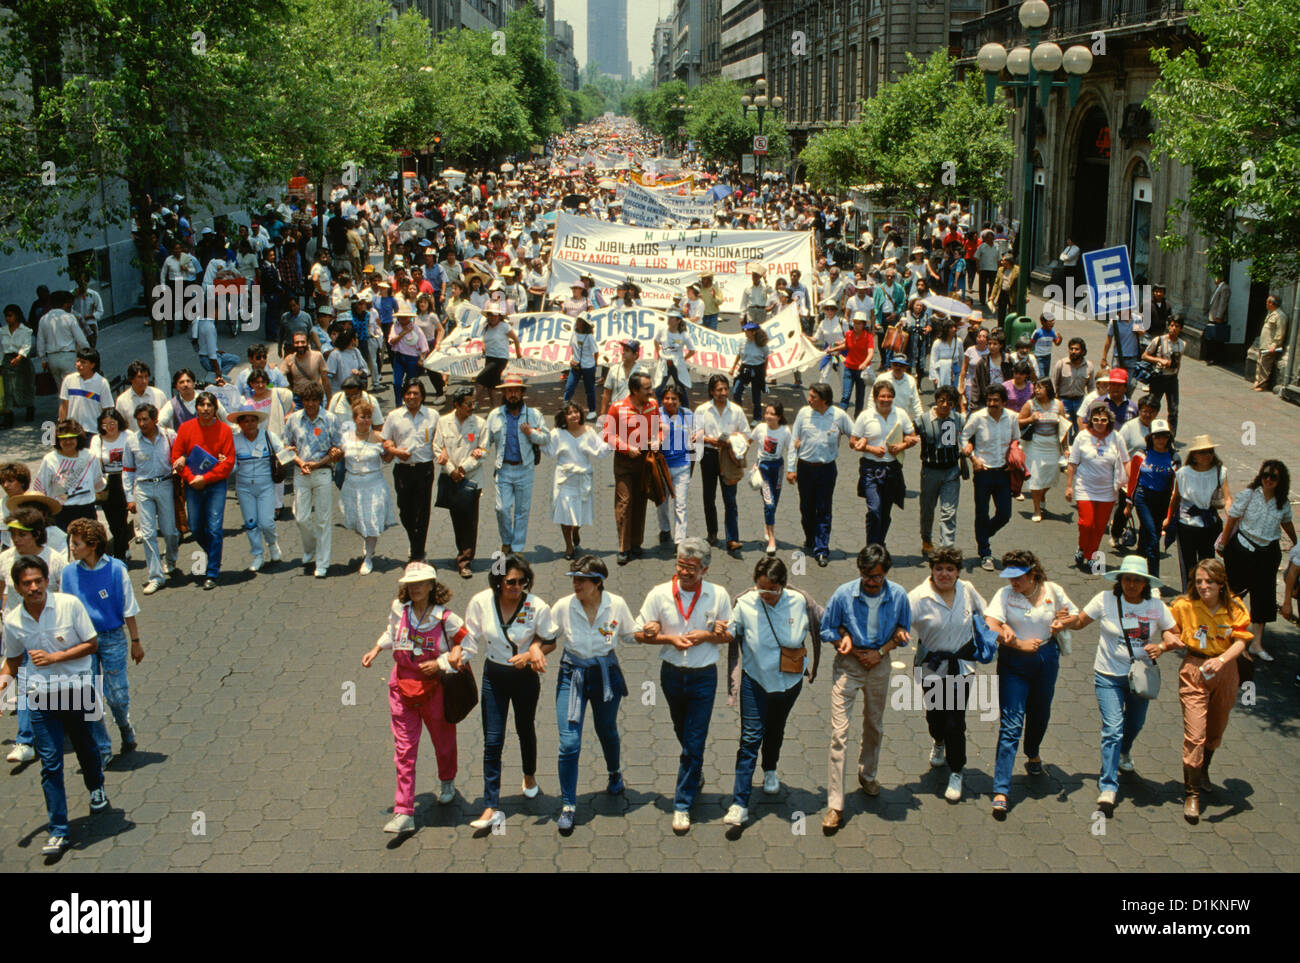 Teacher unions rally against cuts in education in the streets of Mexico City - Stock Image